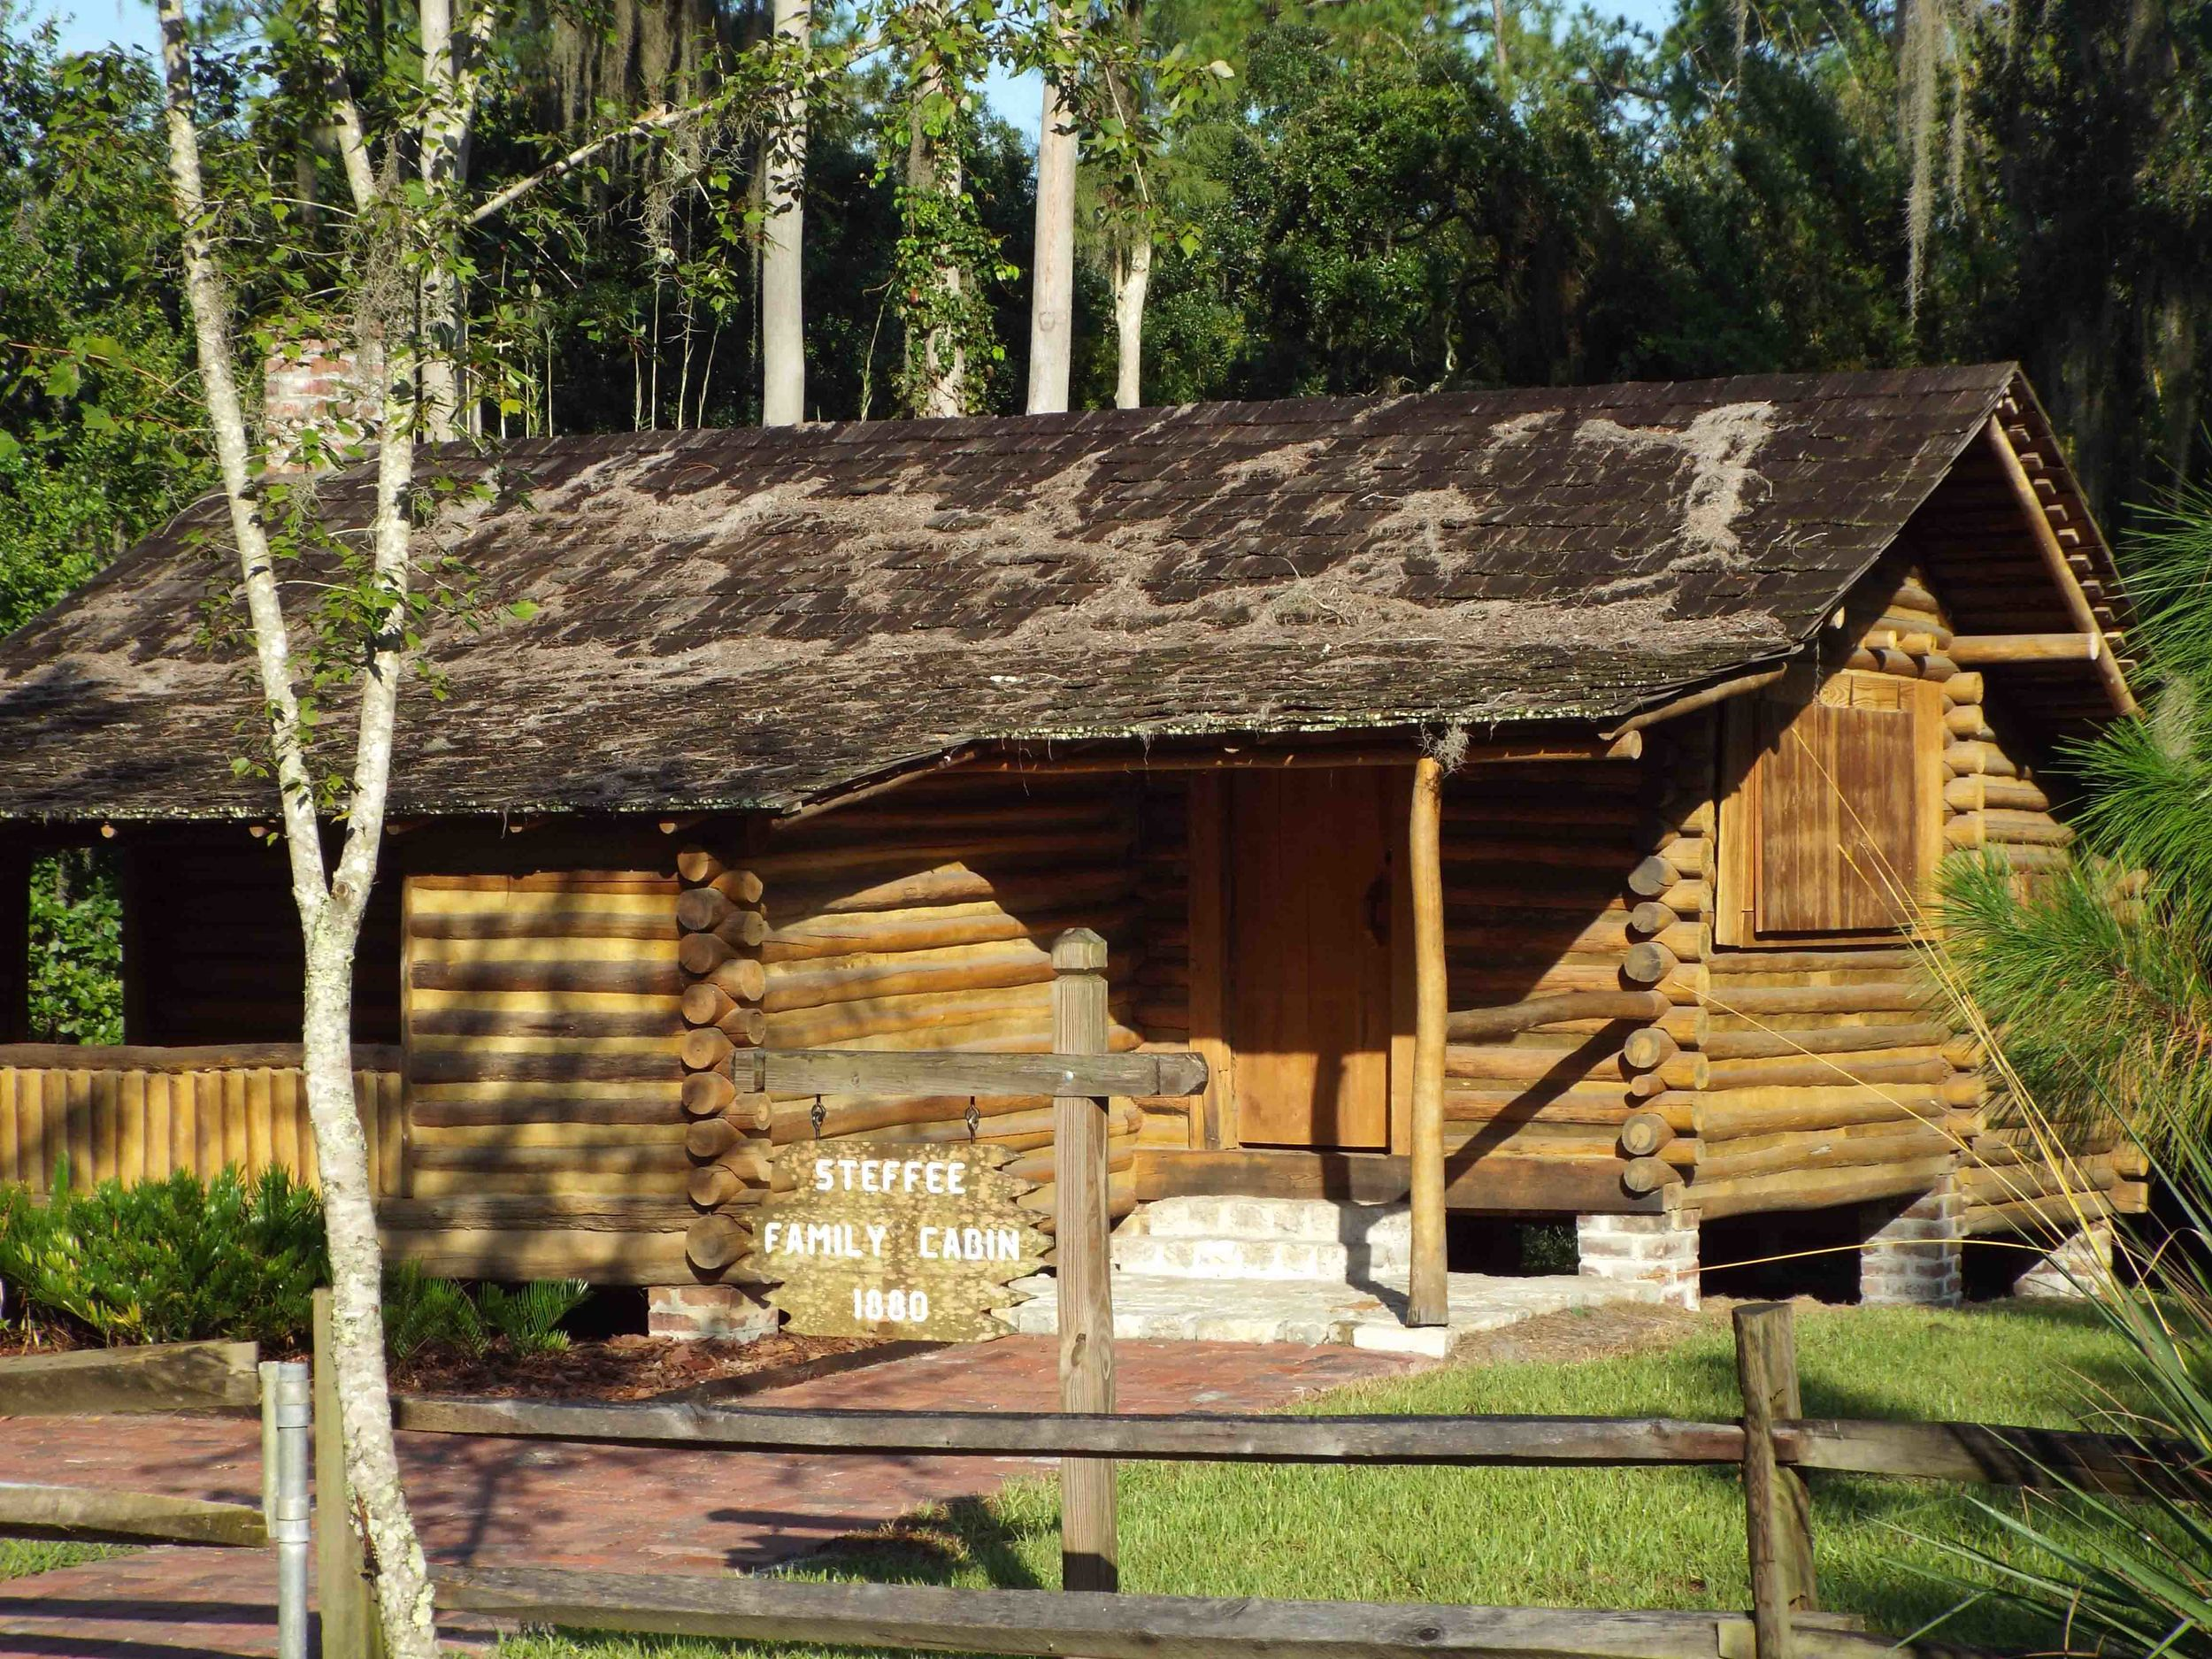 The Steffee Family Cabin dates back to 1880. TSI restored it with historical materials to bring it back to its original beauty.